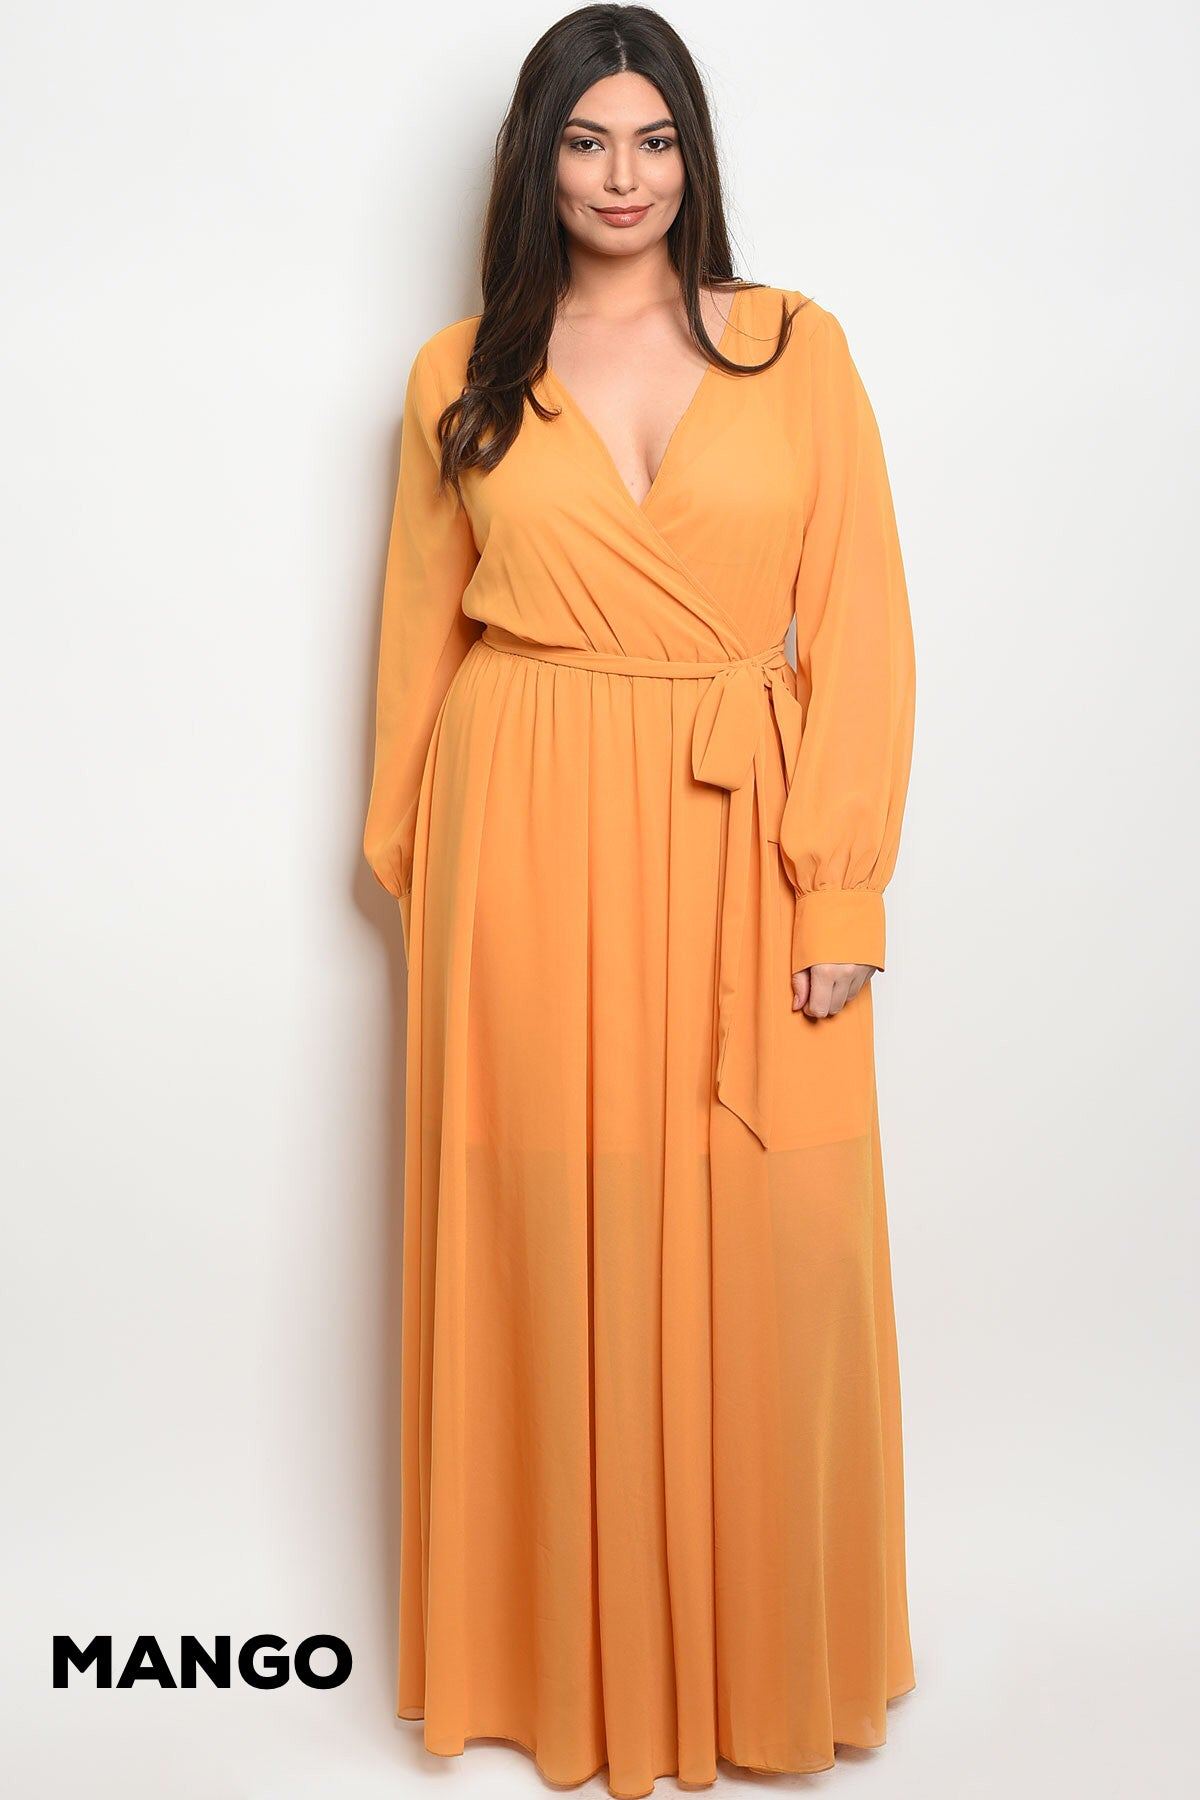 Sheer Maxi (Available in Curvy)